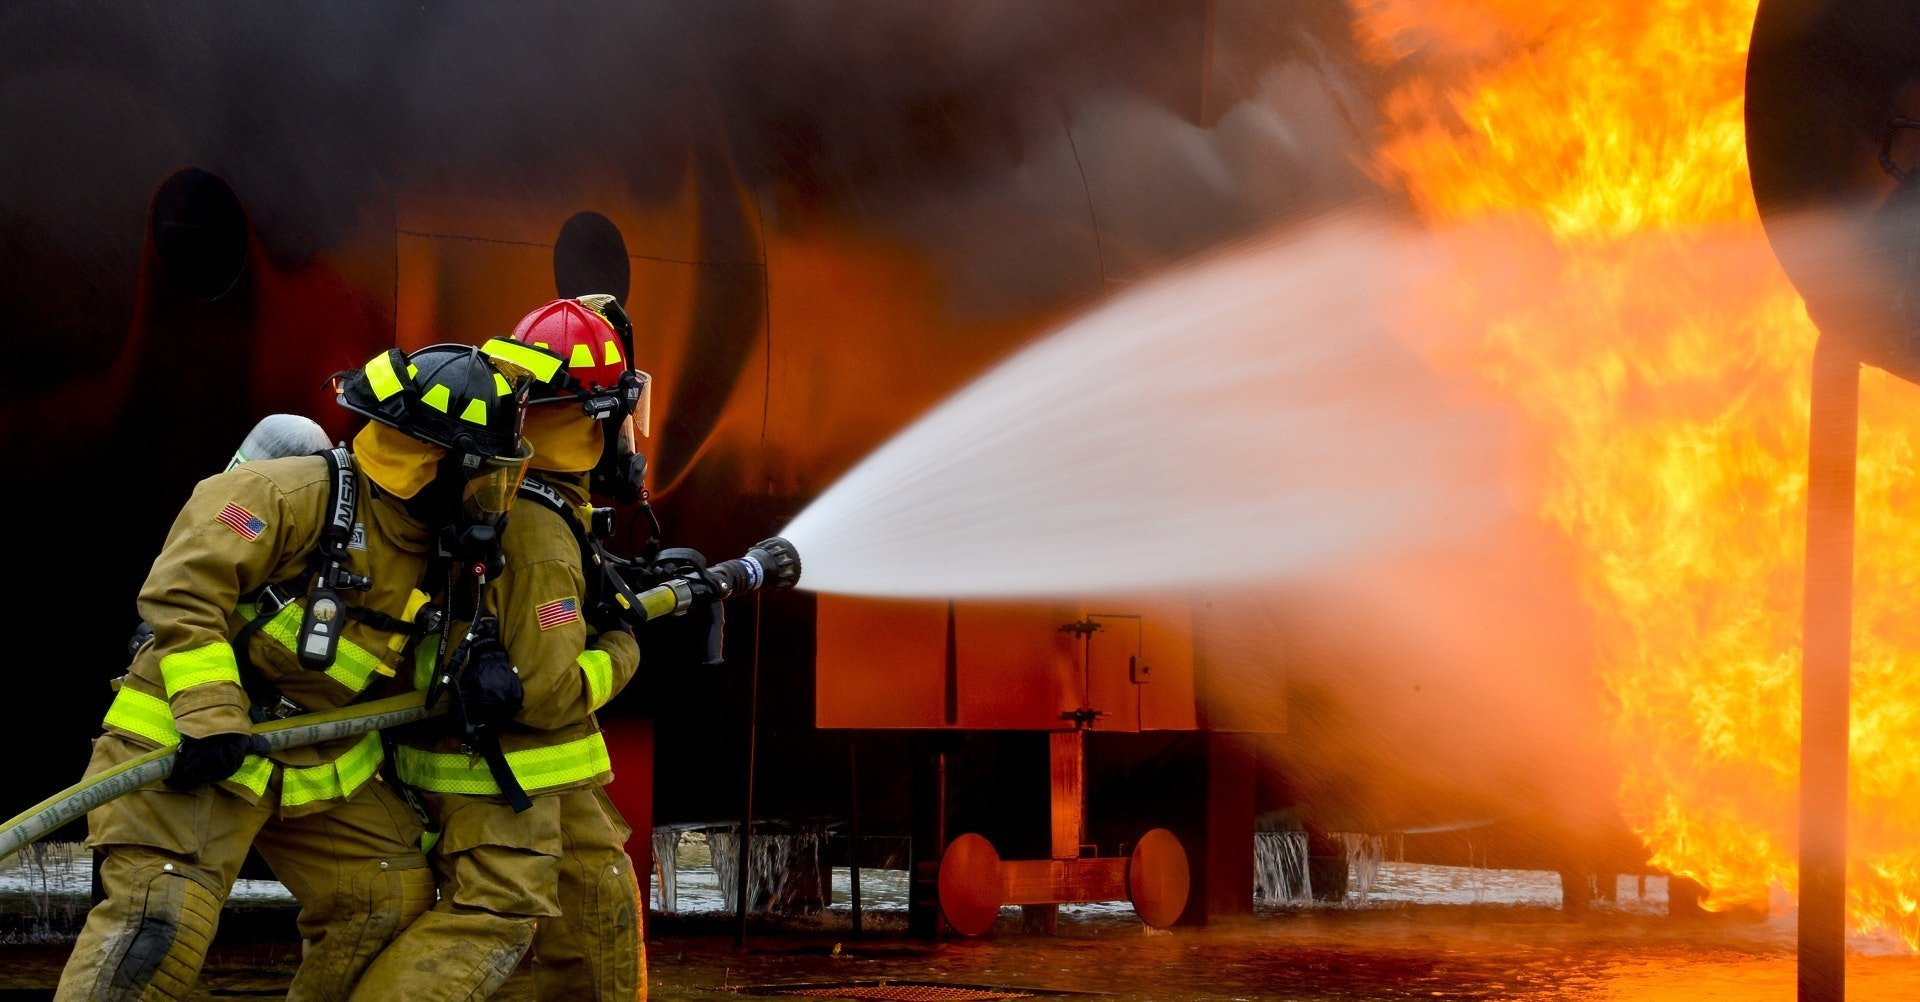 Mrs. Carter's salon had burned down by the time firefighters arrived   Photo: Pexels